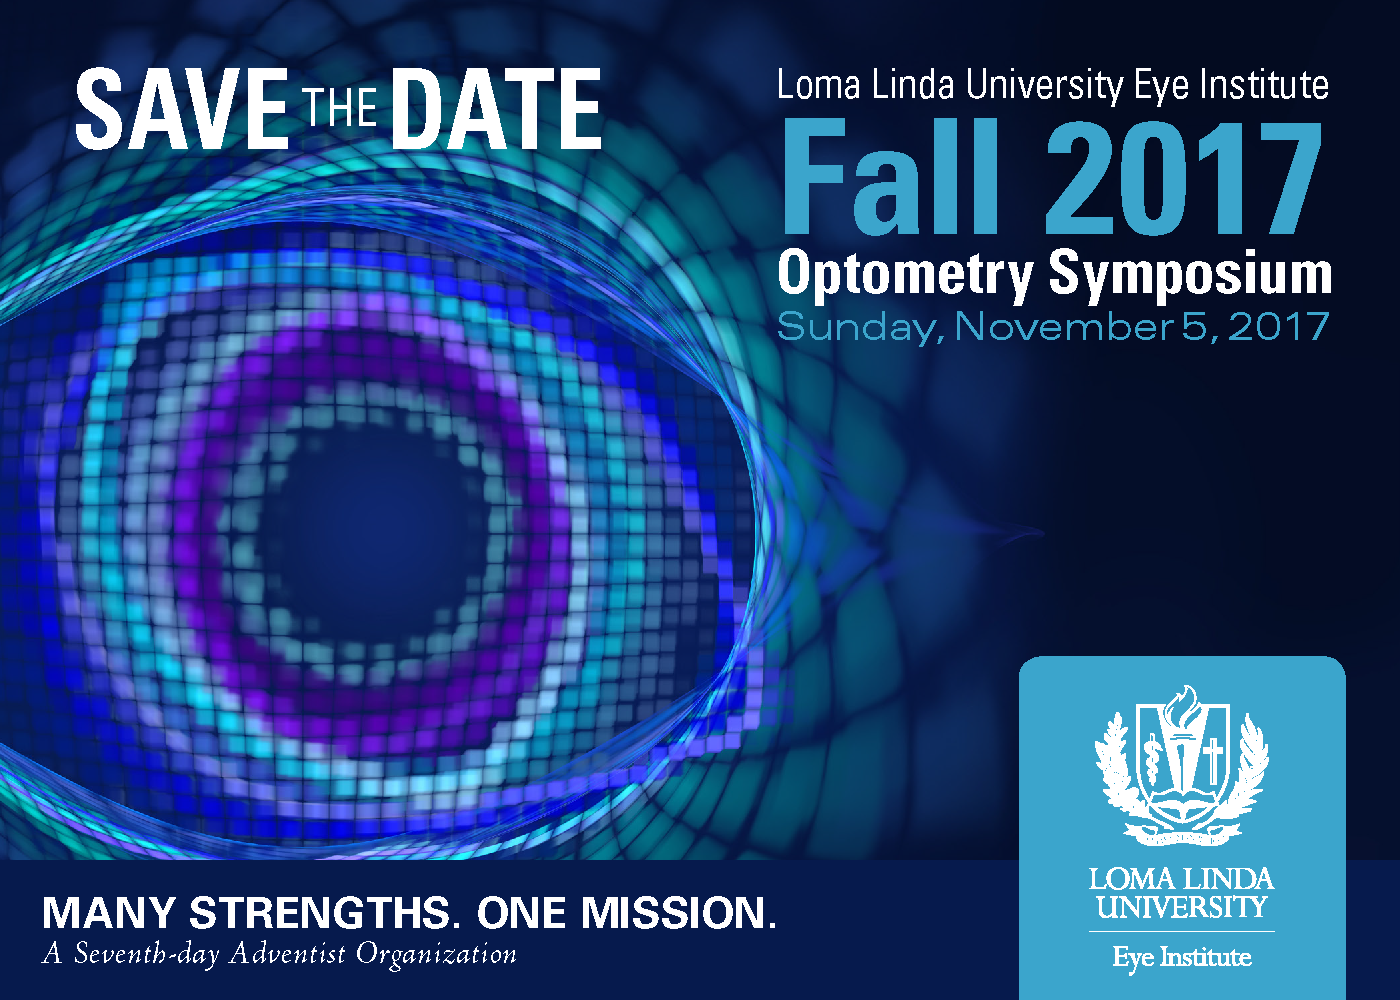 Loma Linda University Eye Institute Fall CE!